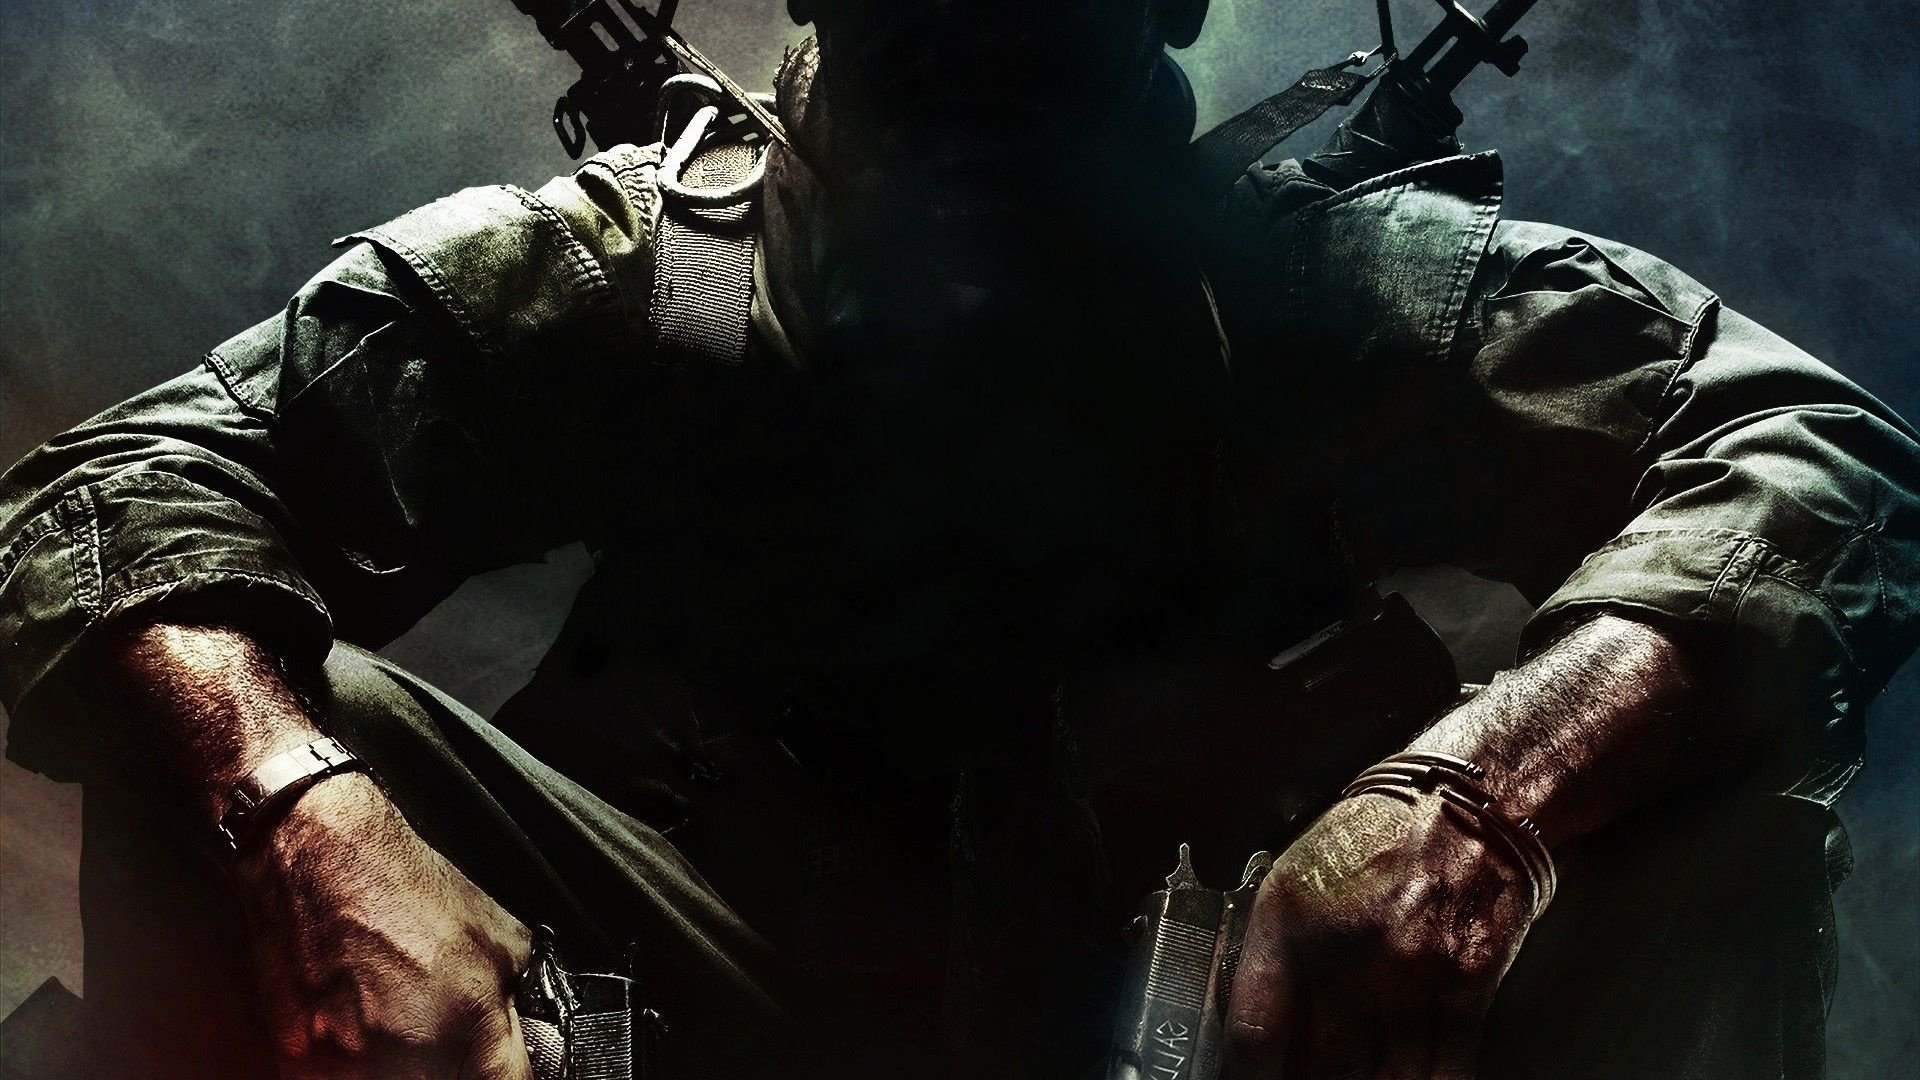 Call Of Duty Black Ops Cold War Leak Reveals It S A Direct Sequel To The First Black Ops Den Of Geek